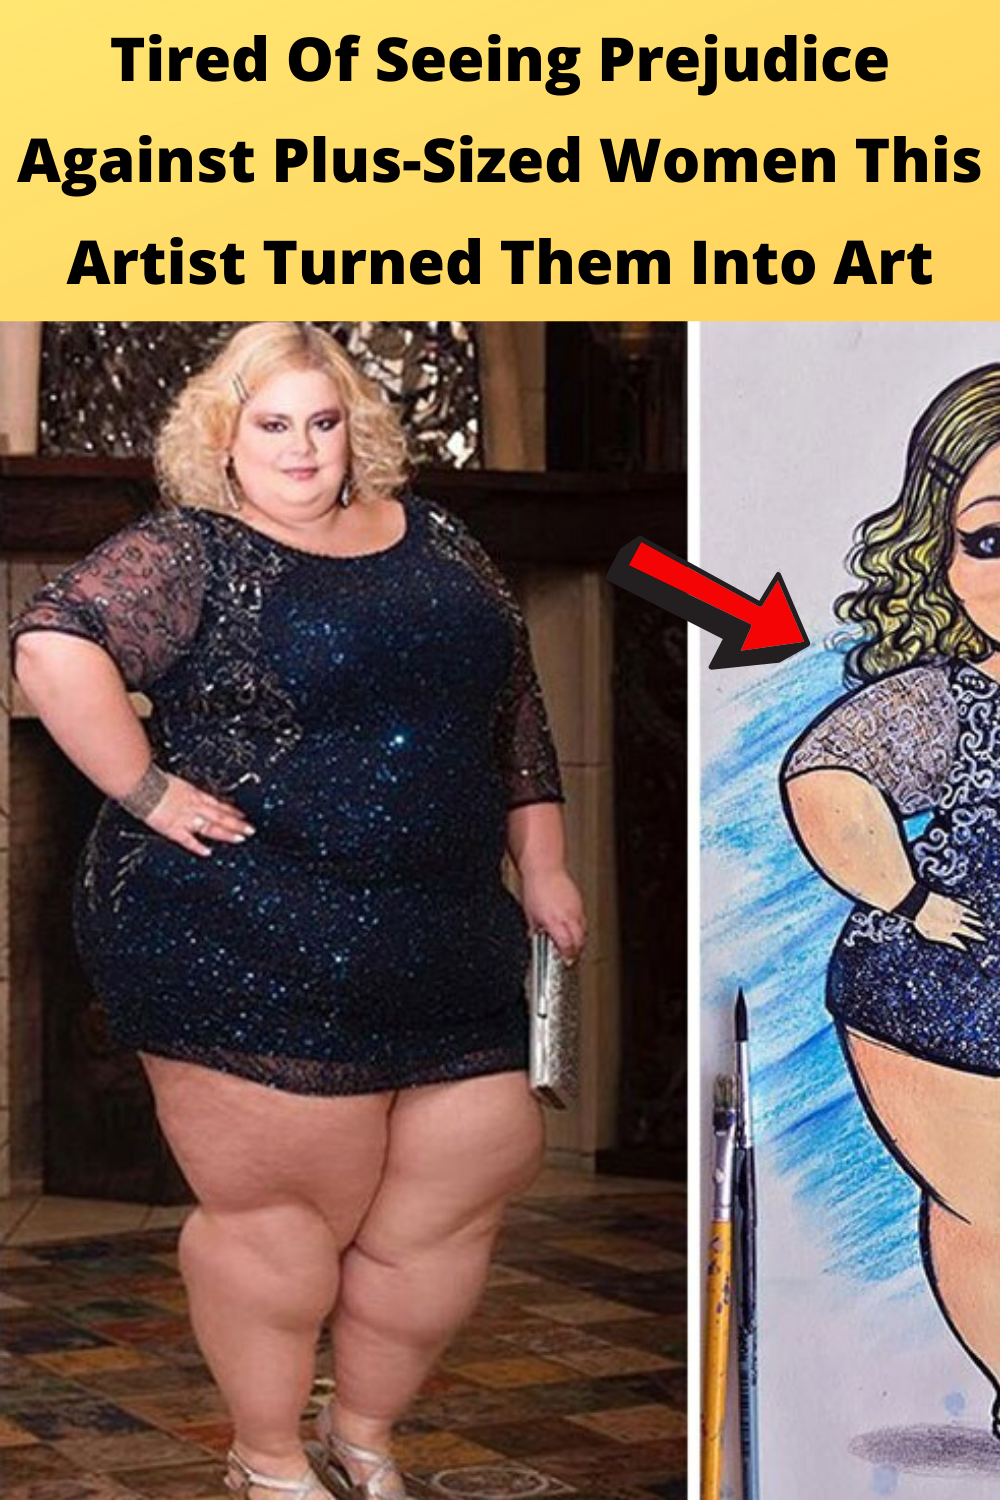 Tired Of Seeing Prejudice Against Plus-Sized Women This